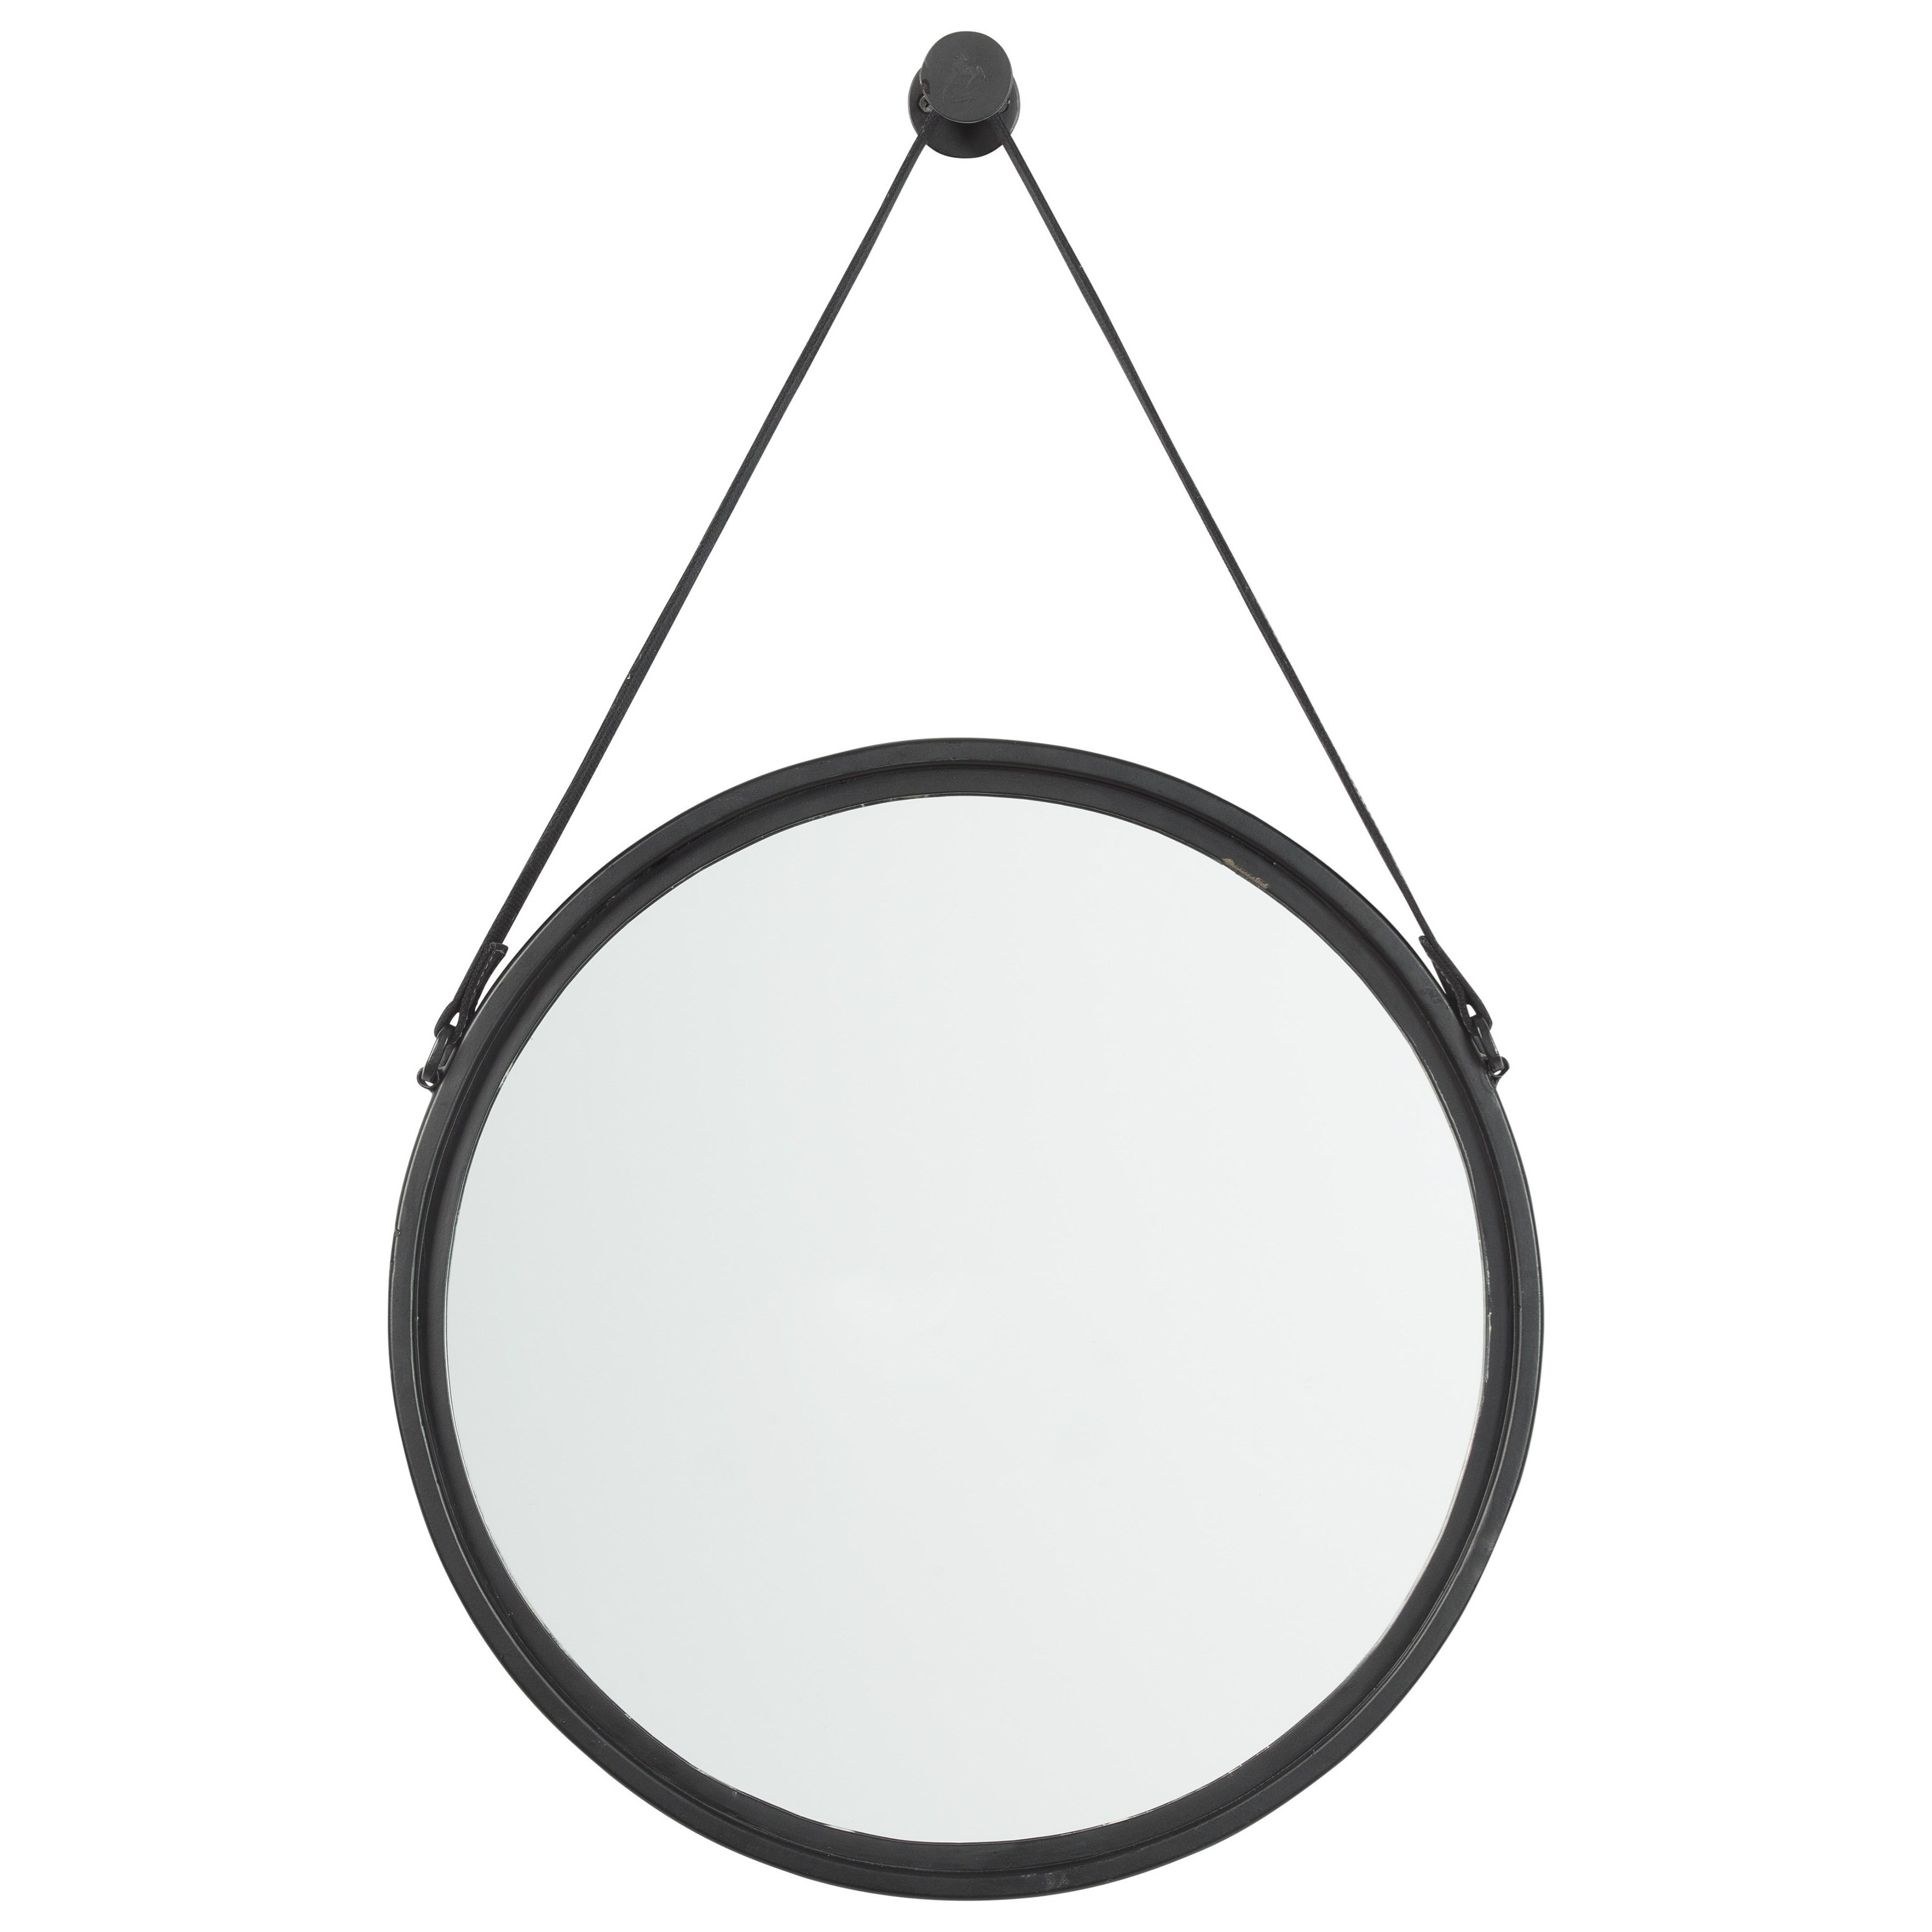 Accent Mirrors Dusan Black Accent Mirror by Signature Design by Ashley at Northeast Factory Direct